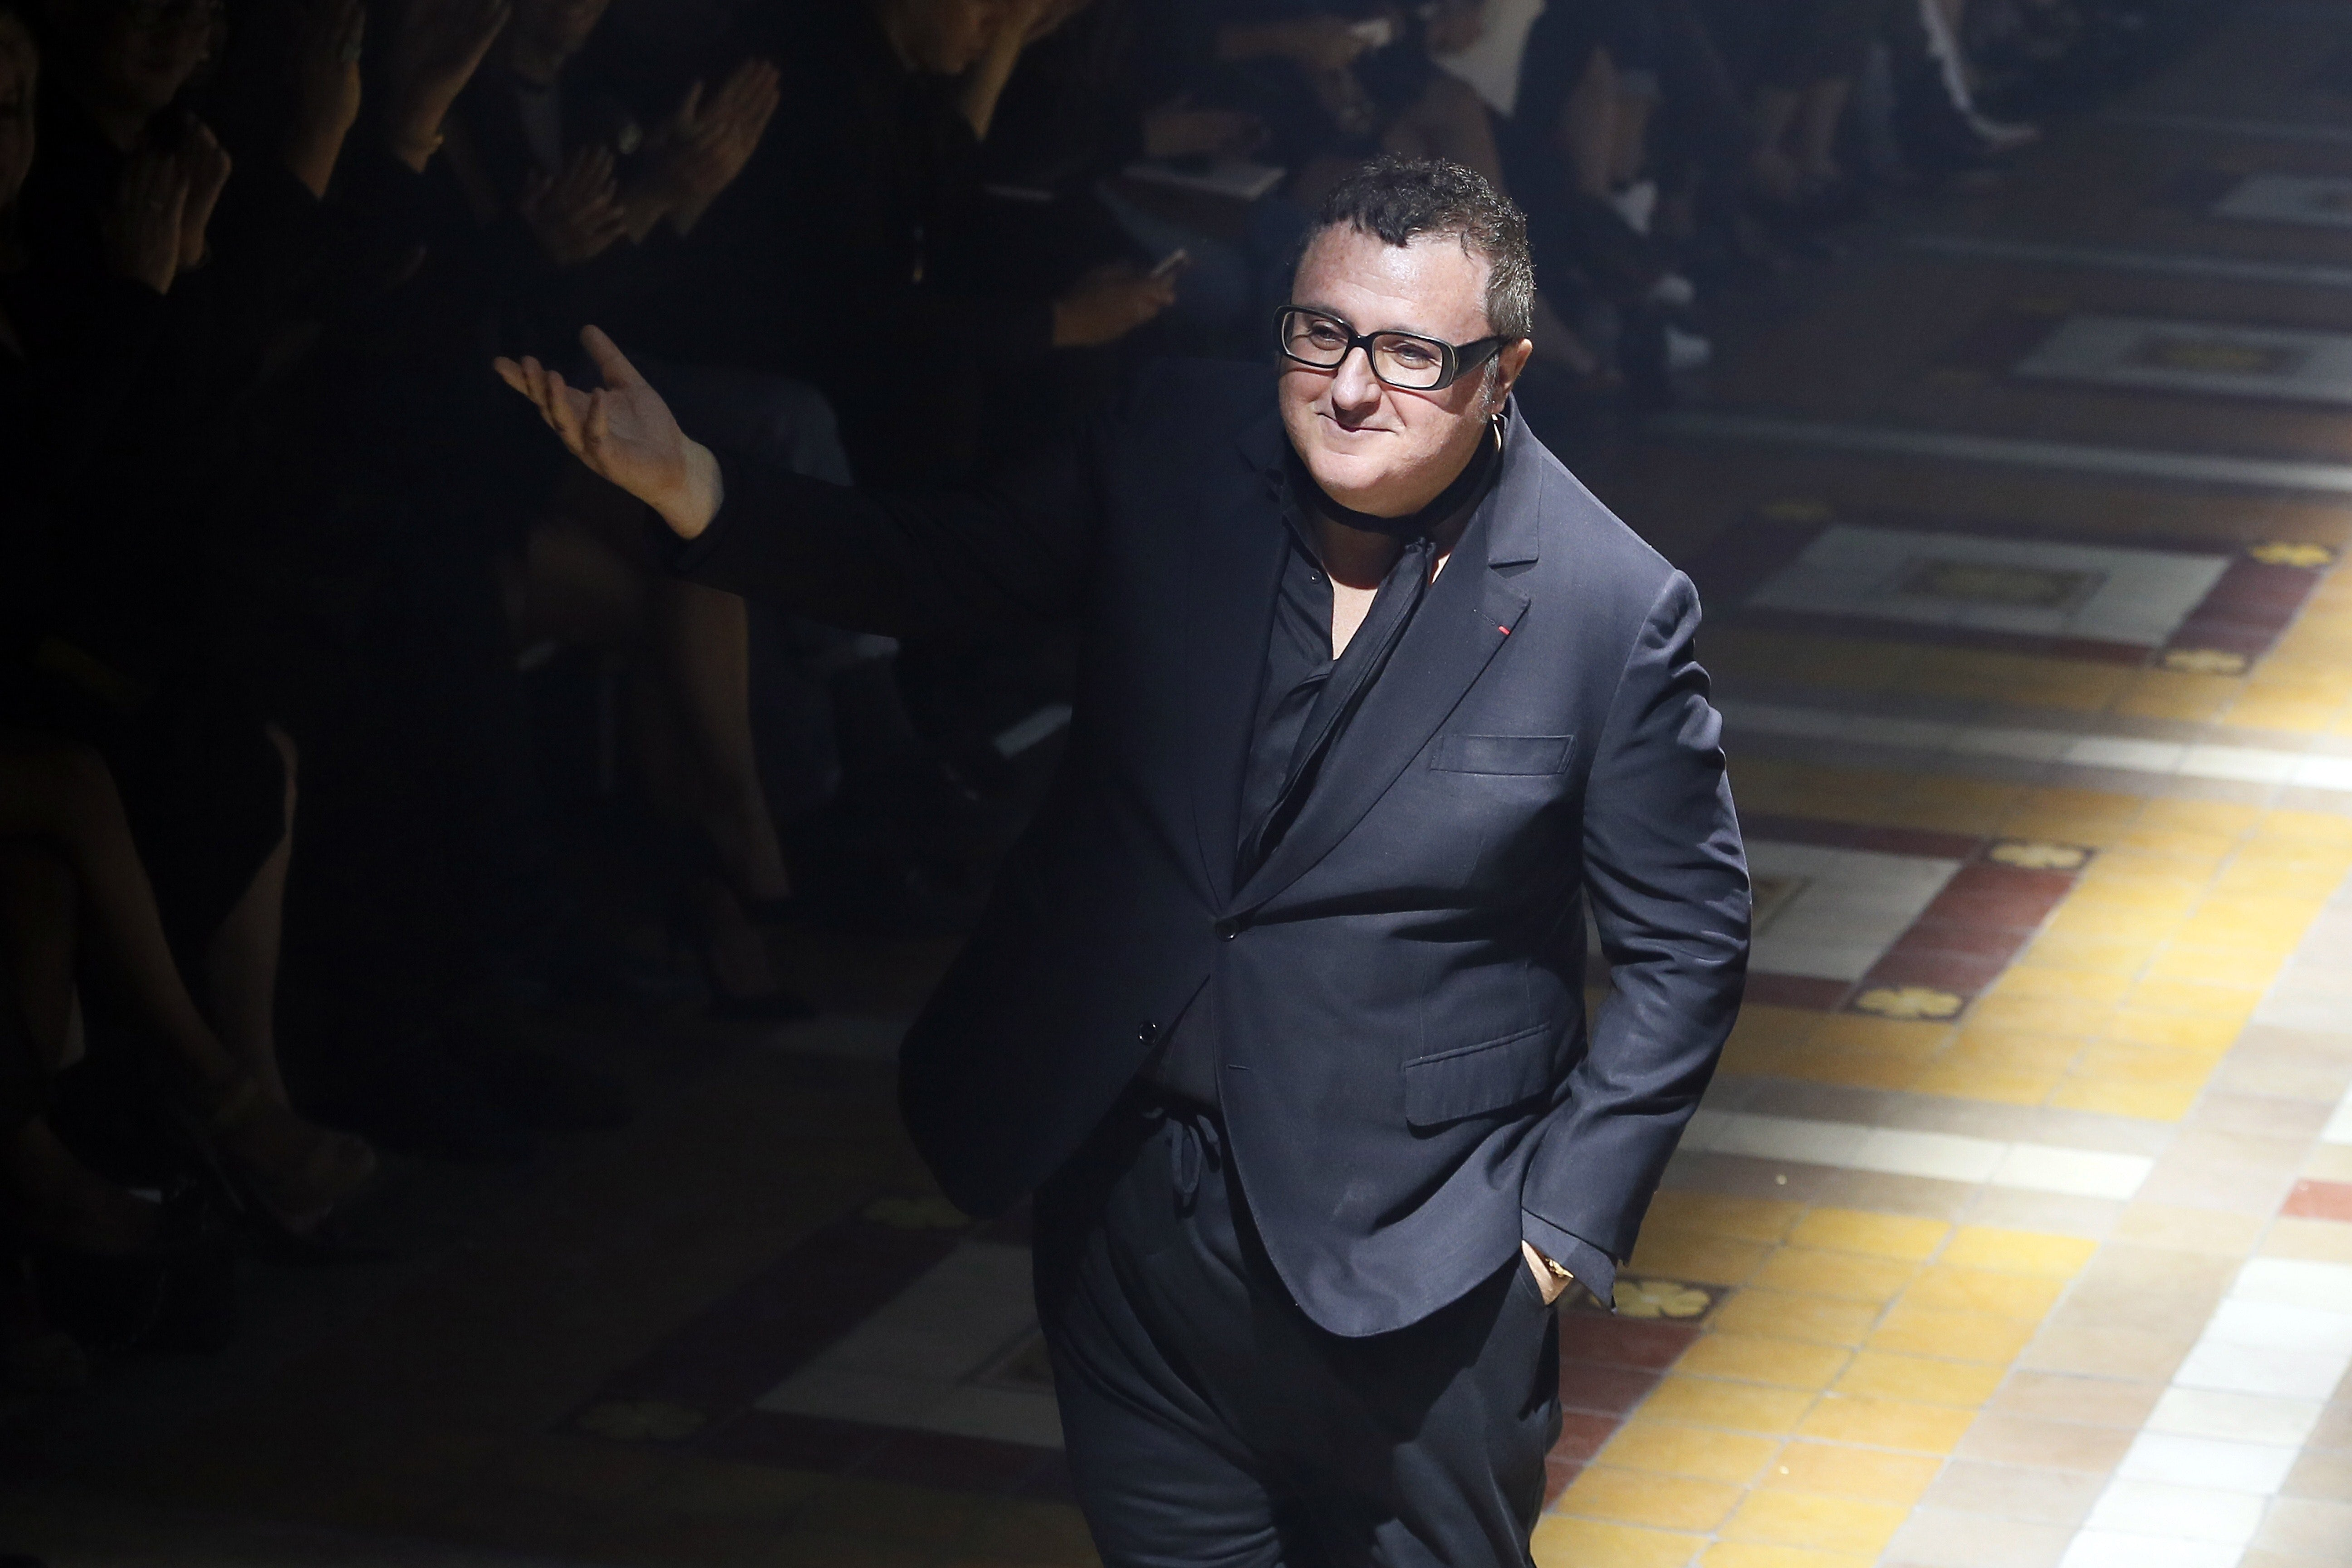 Alber Elbaz at the end of the Lanvin's 2015 Spring/Summer fashion show. Getty Images.